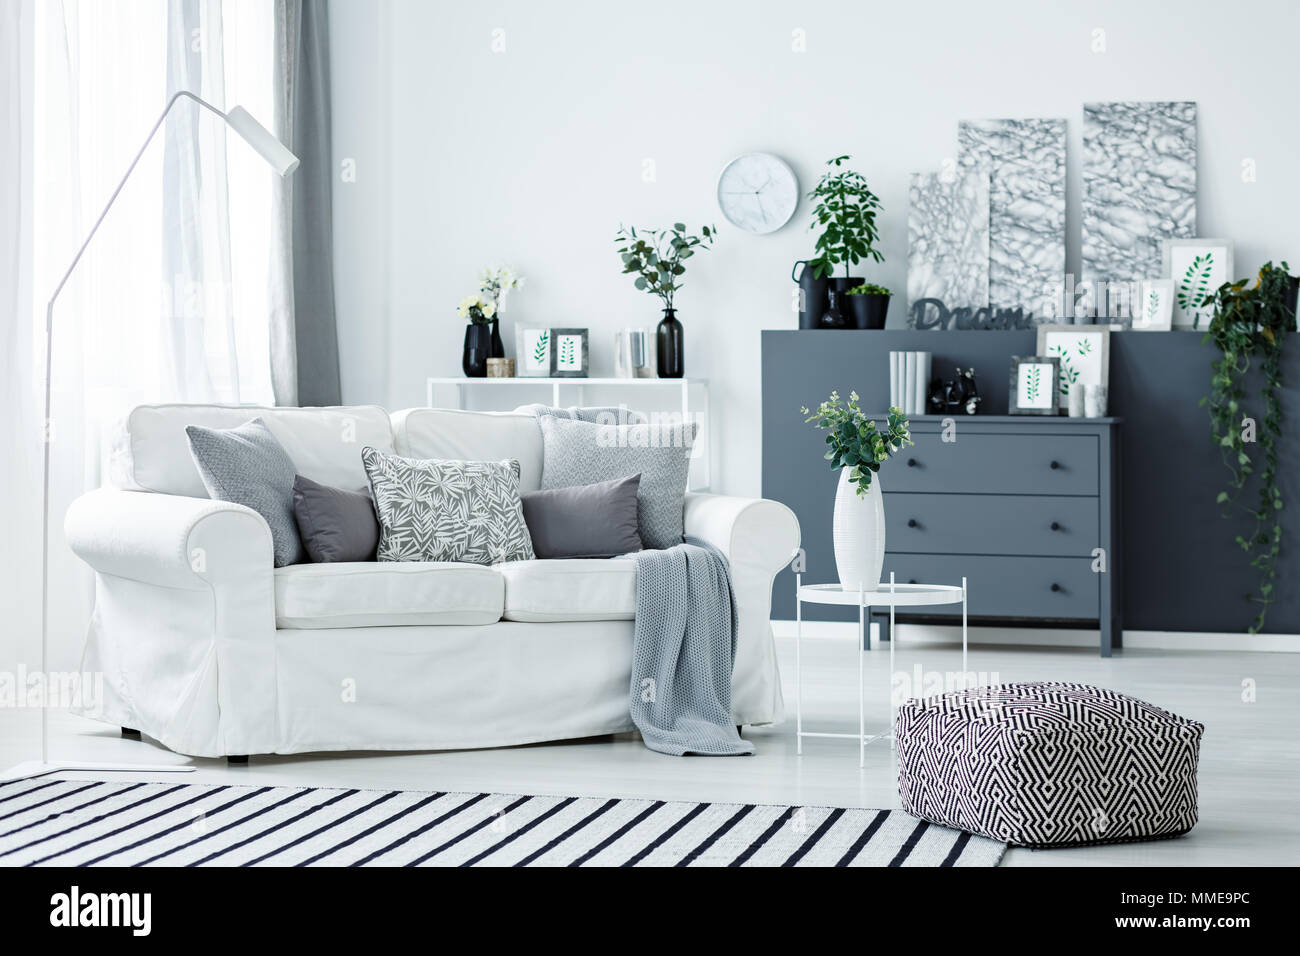 White, comfy sofa, pouf, plants and grey accents in a modern living room interior - Stock Image